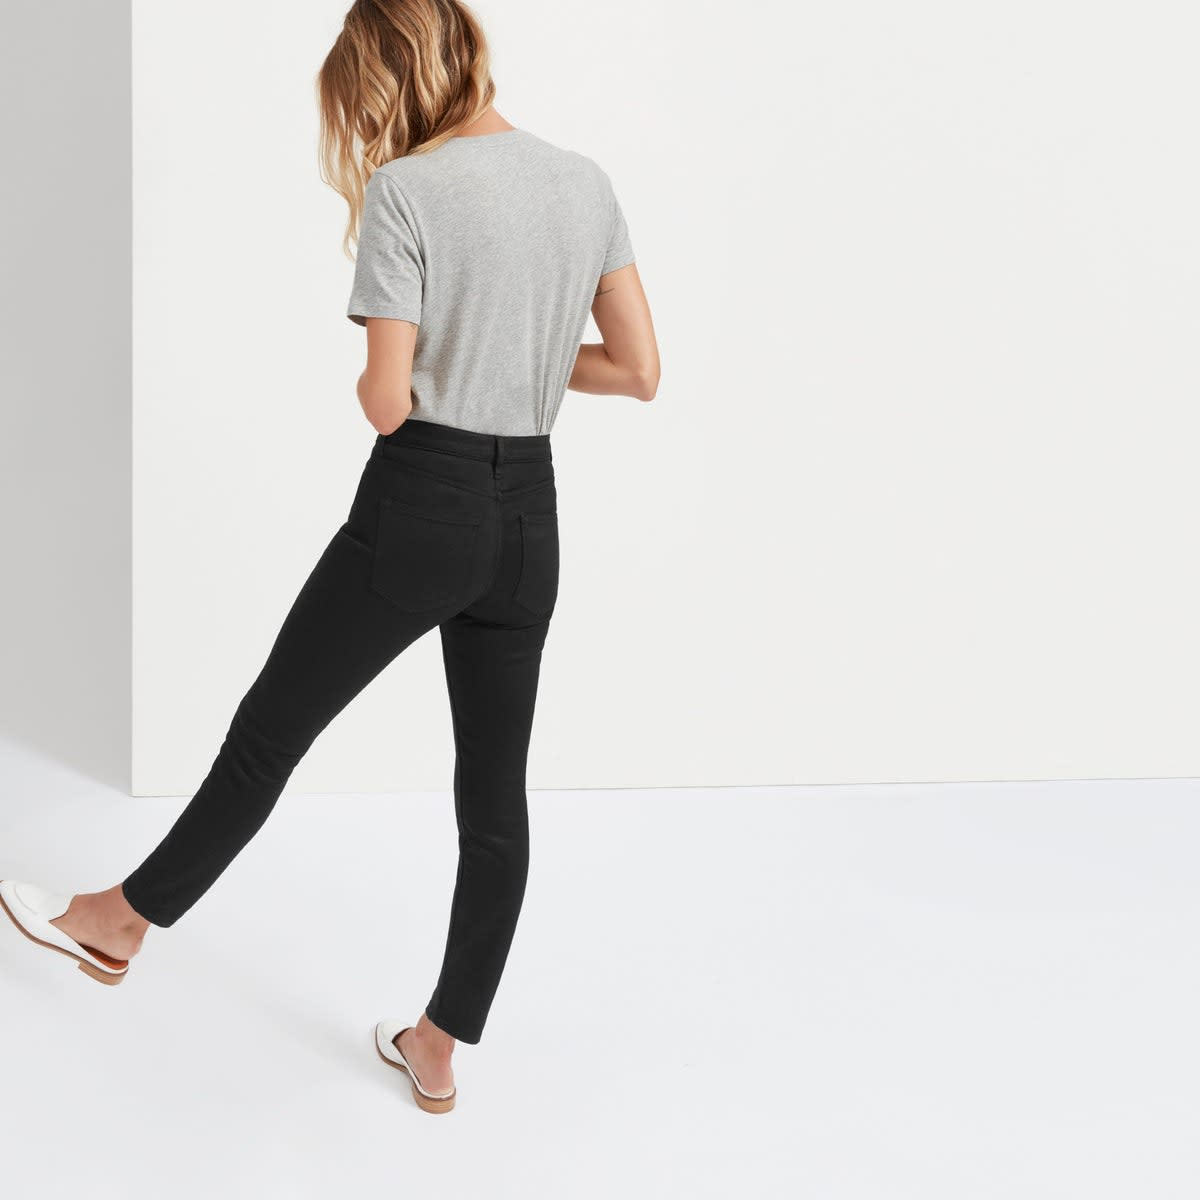 The Mid-Rise Skinny Jean (Regular), $68